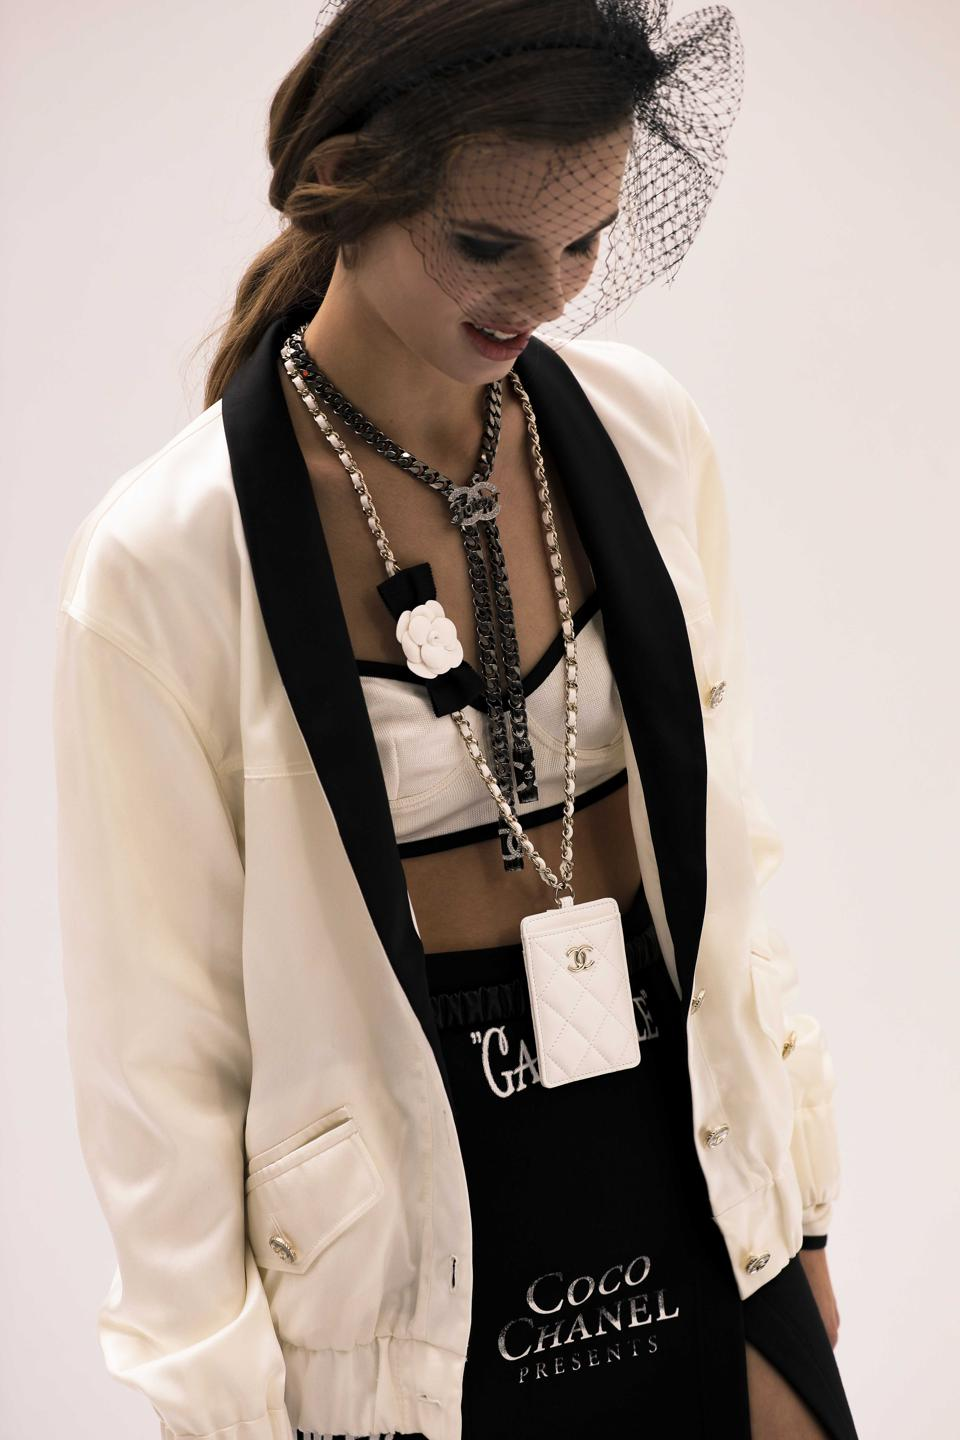 CHANEL SS 2021 RTW Collection- logos and trademarks are accentuated